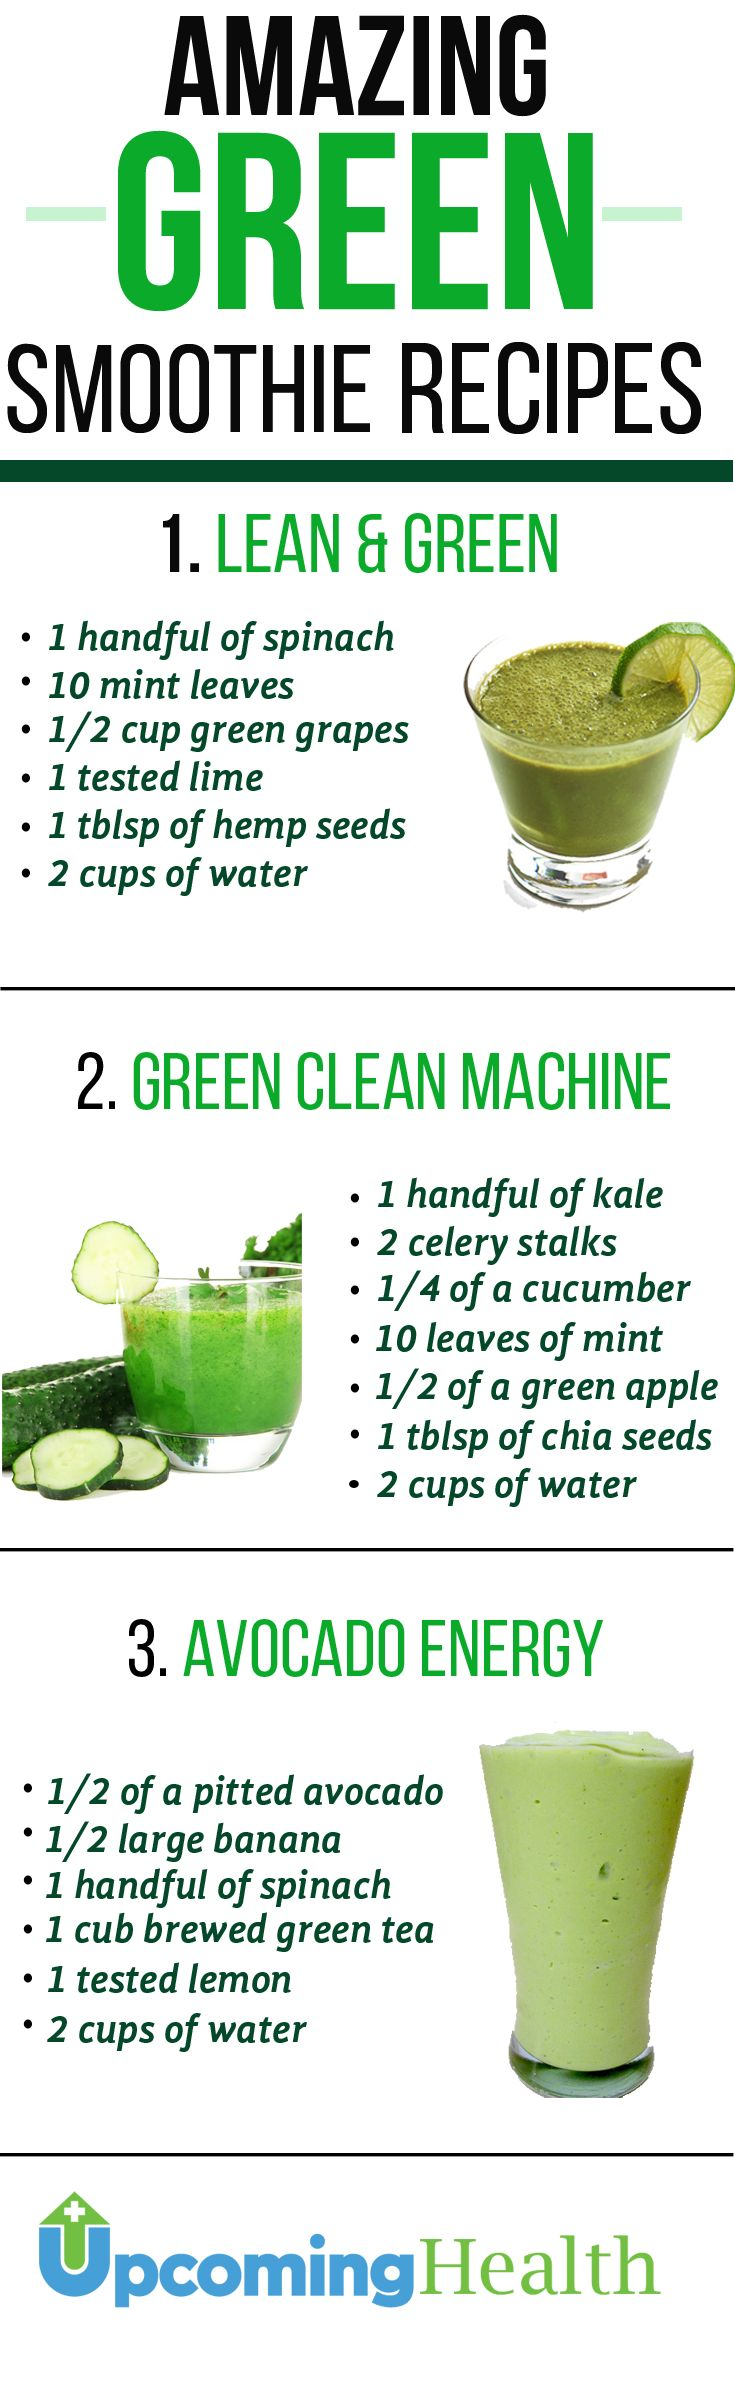 See the benefits of green smoothies and how they will change your health. Check out some of the best green smoothie recipes out there. Don't miss out!